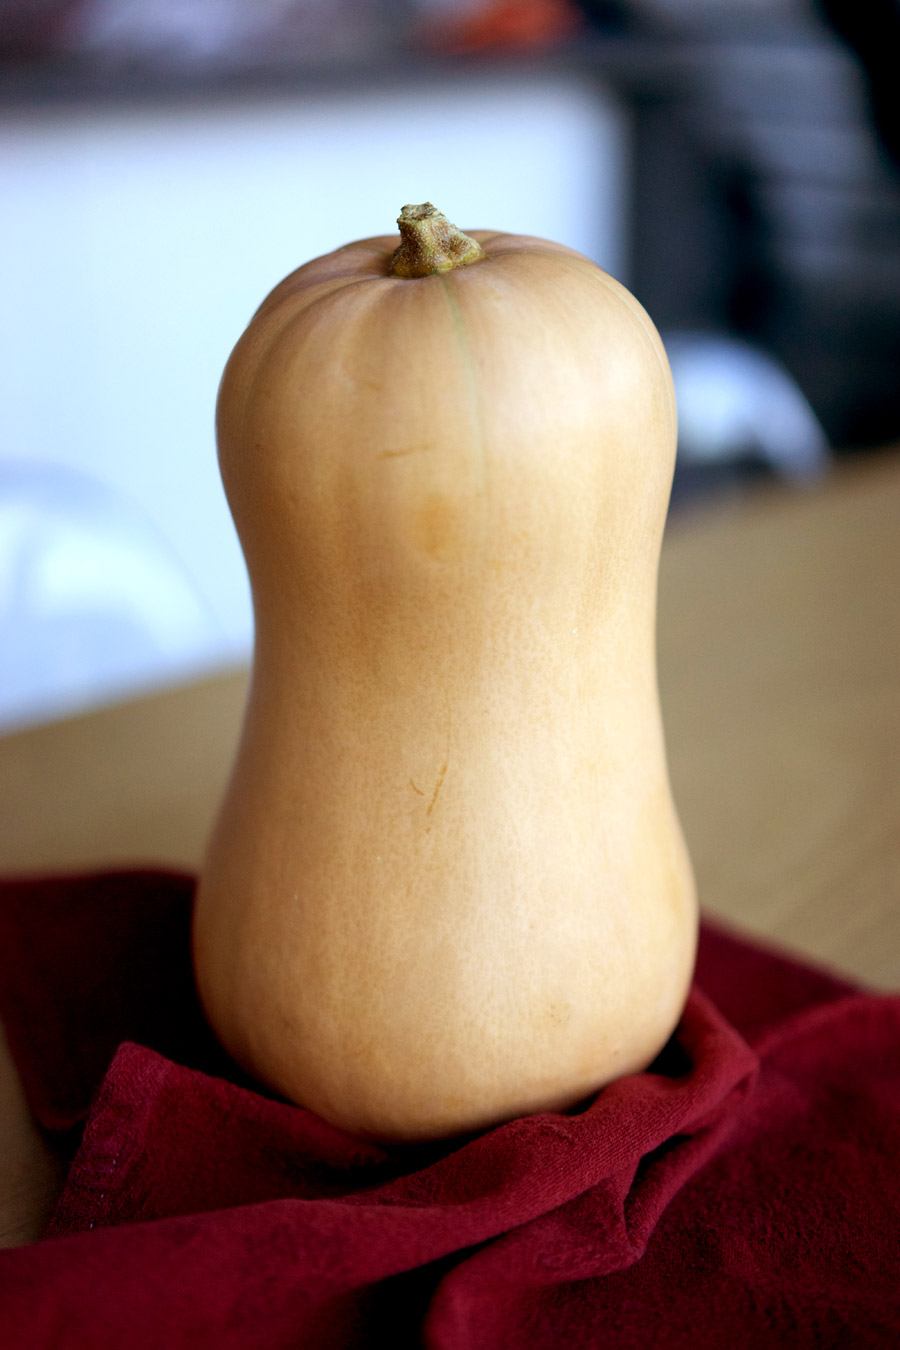 A beautiful, smooth and creamy coloured butternut squash on a deep red cloth